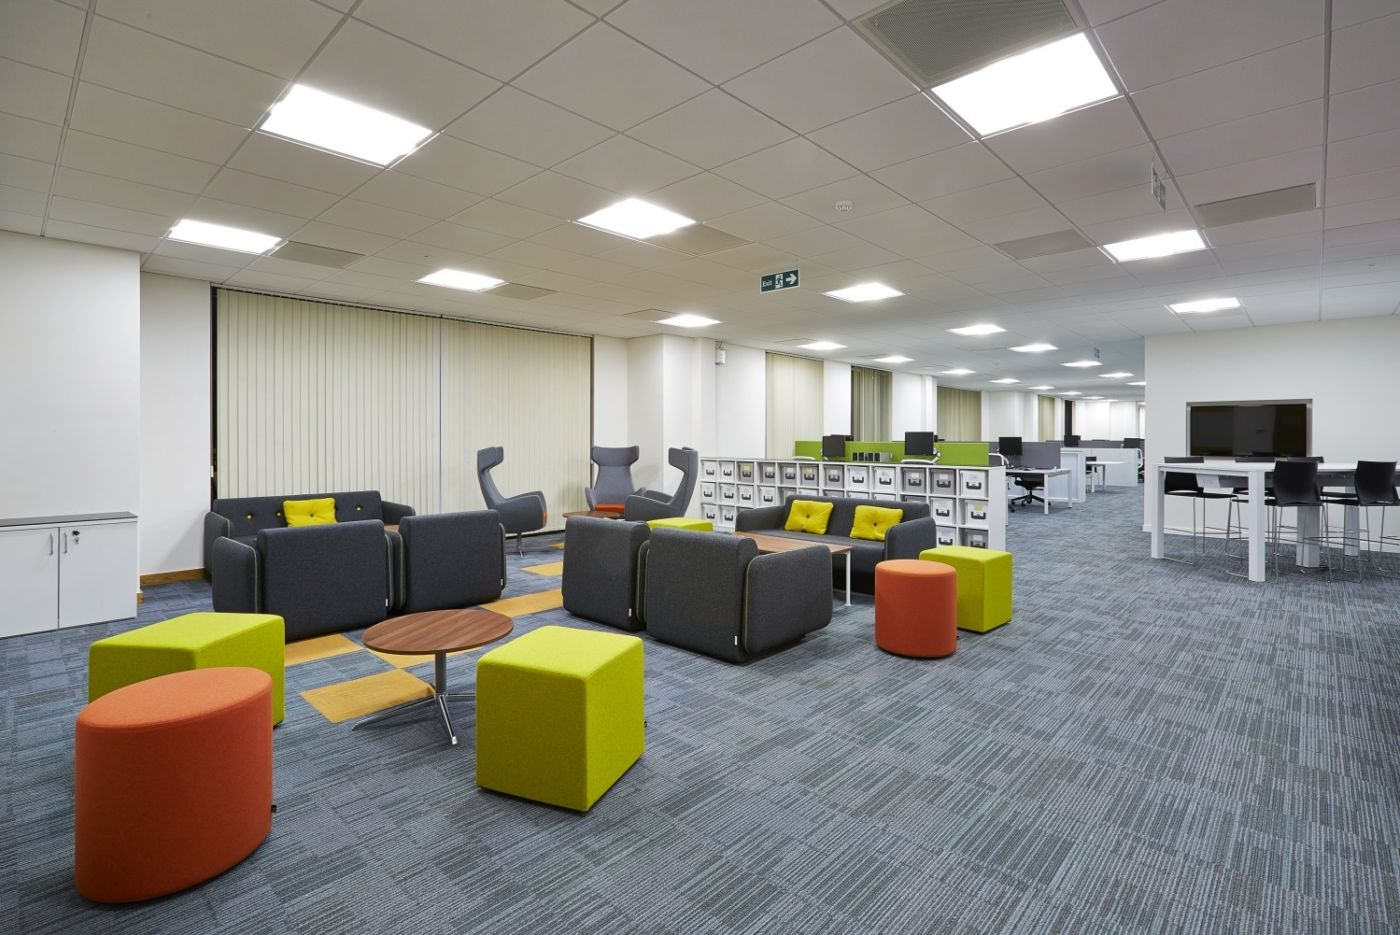 Colourful seating area in office fit out